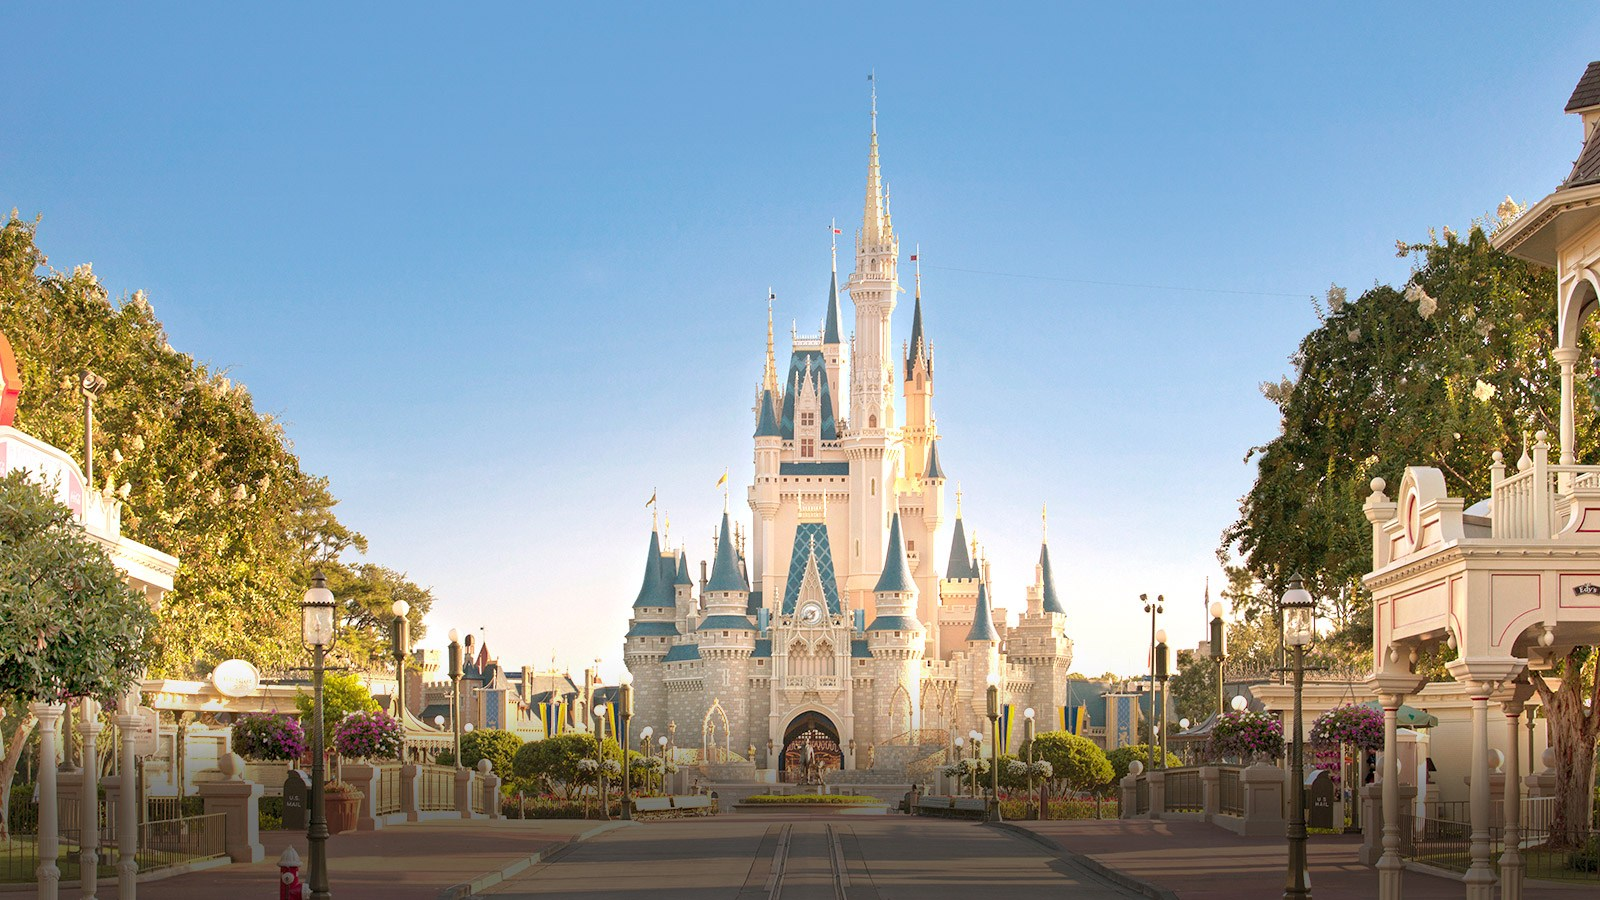 Disney World Hd Posted By Ethan Thompson